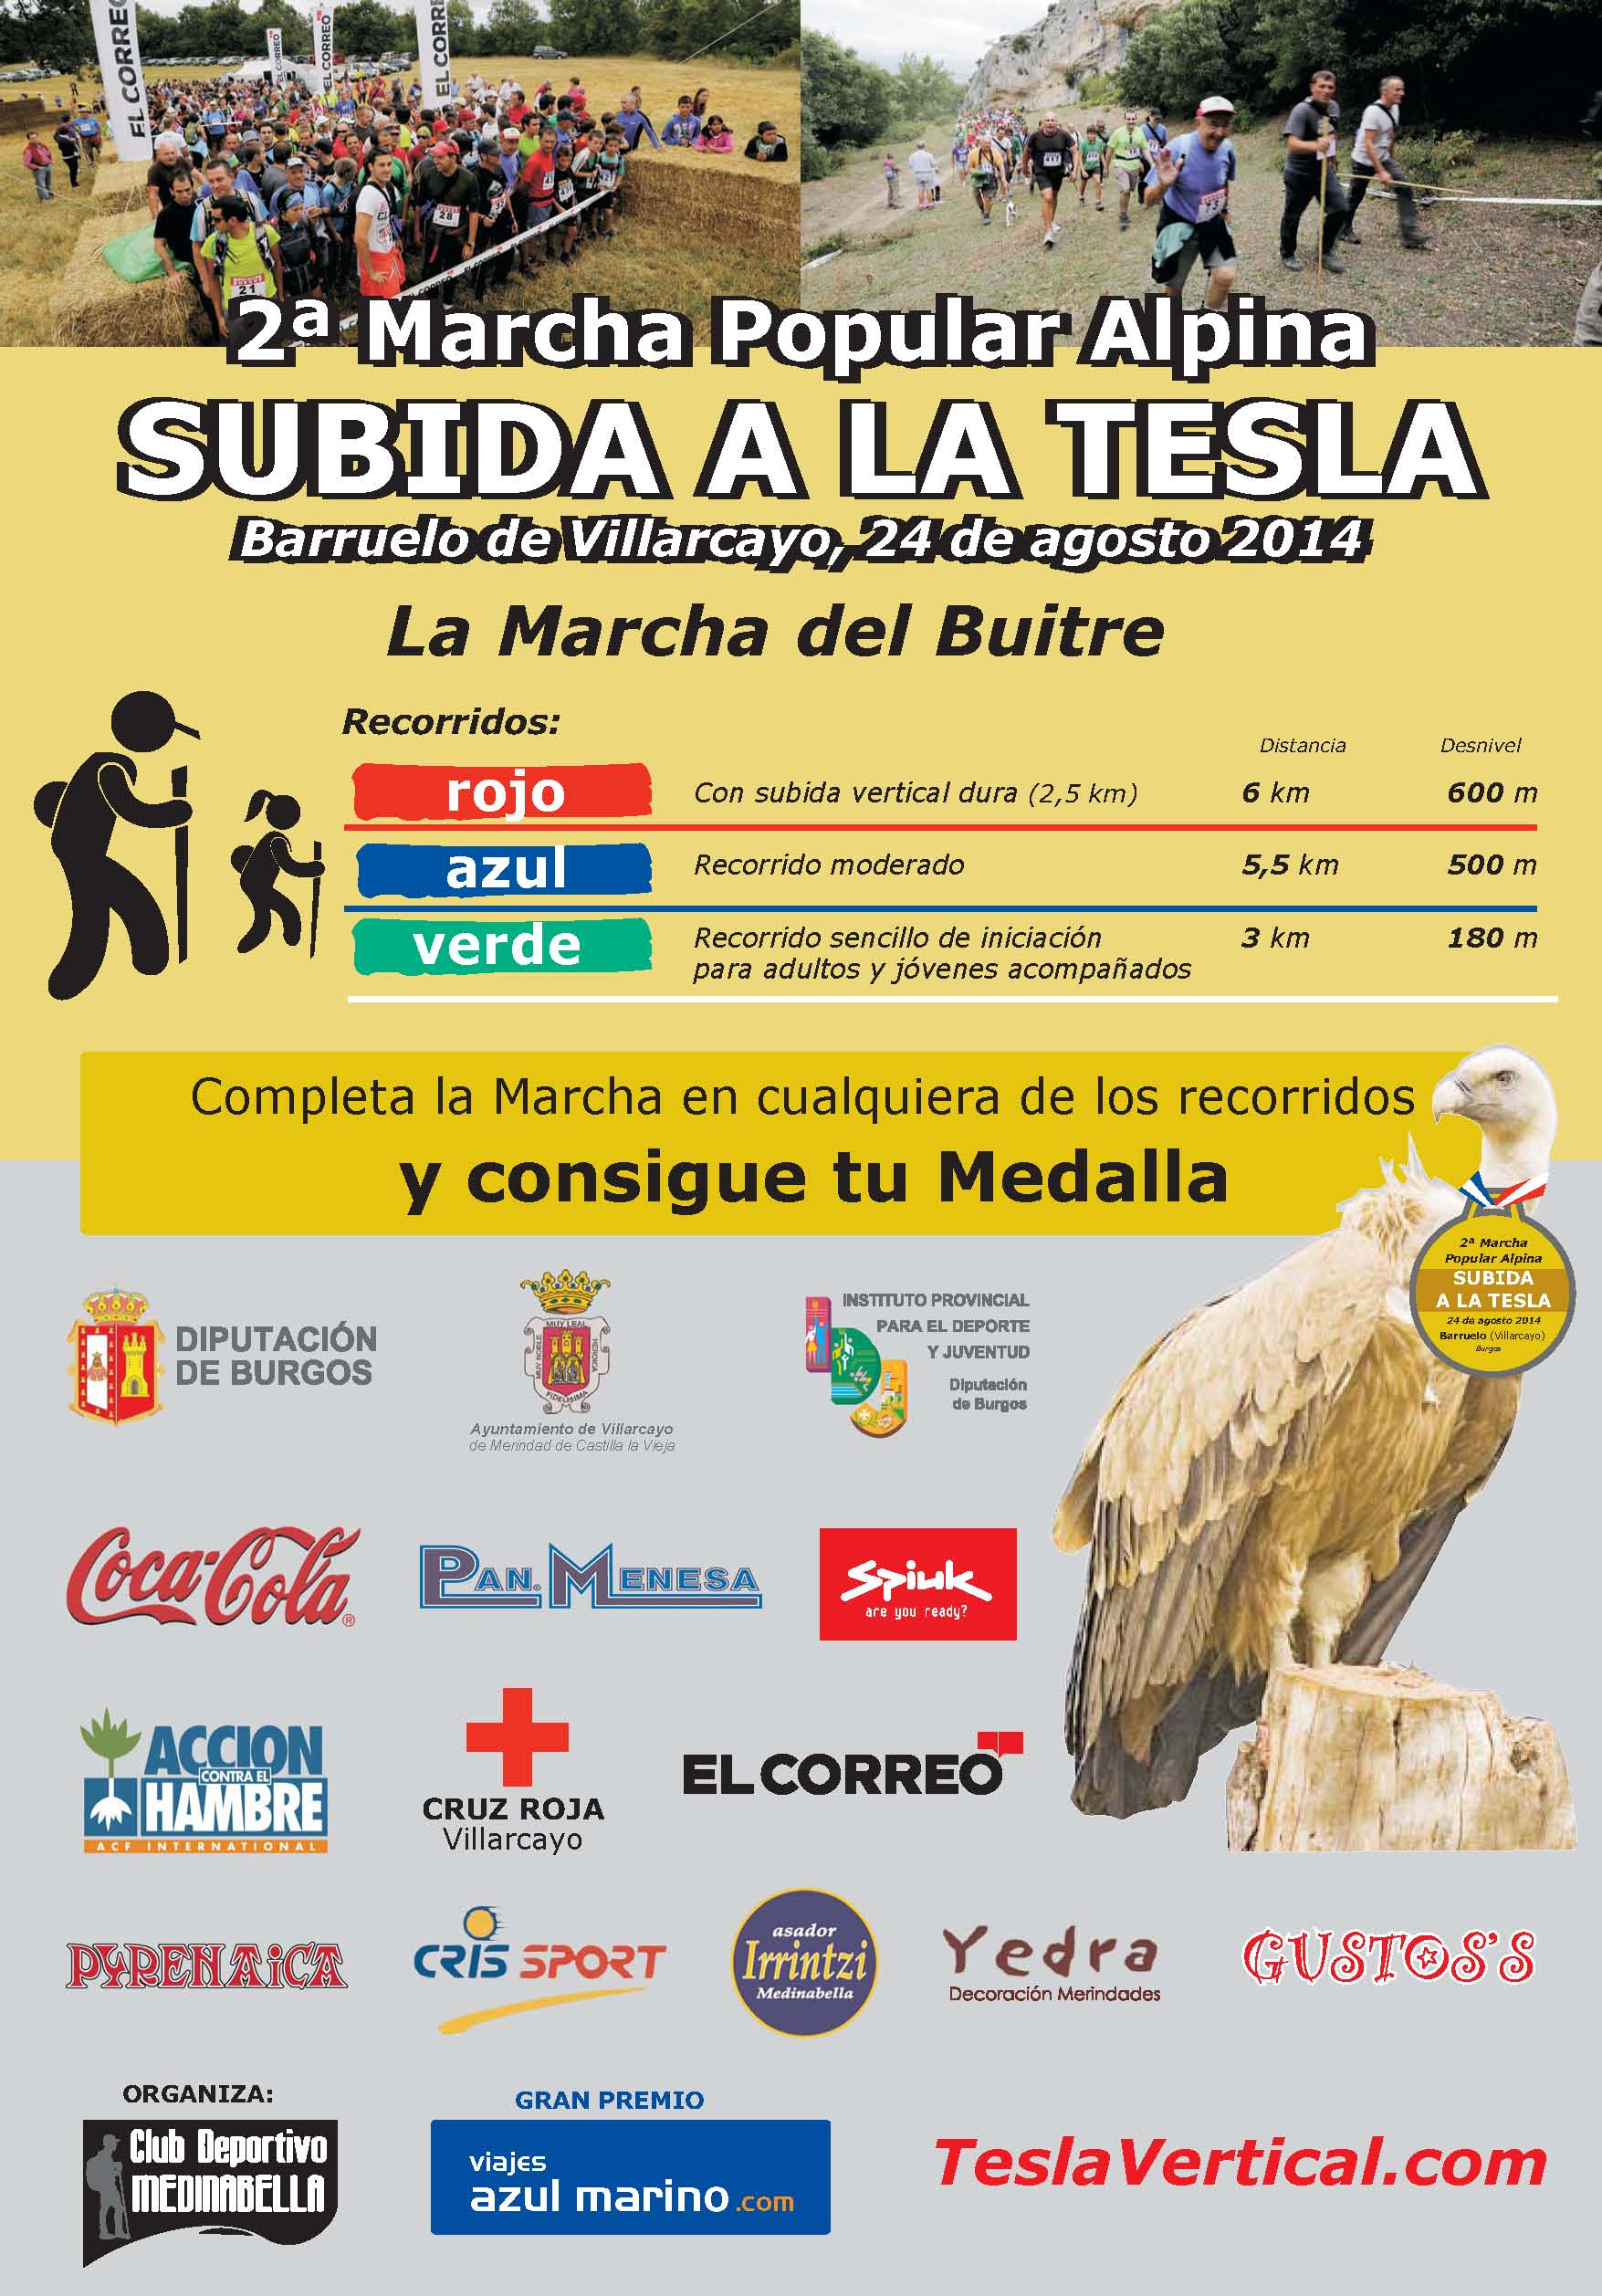 Cartel Tesla Vertical 2014 Definitivo